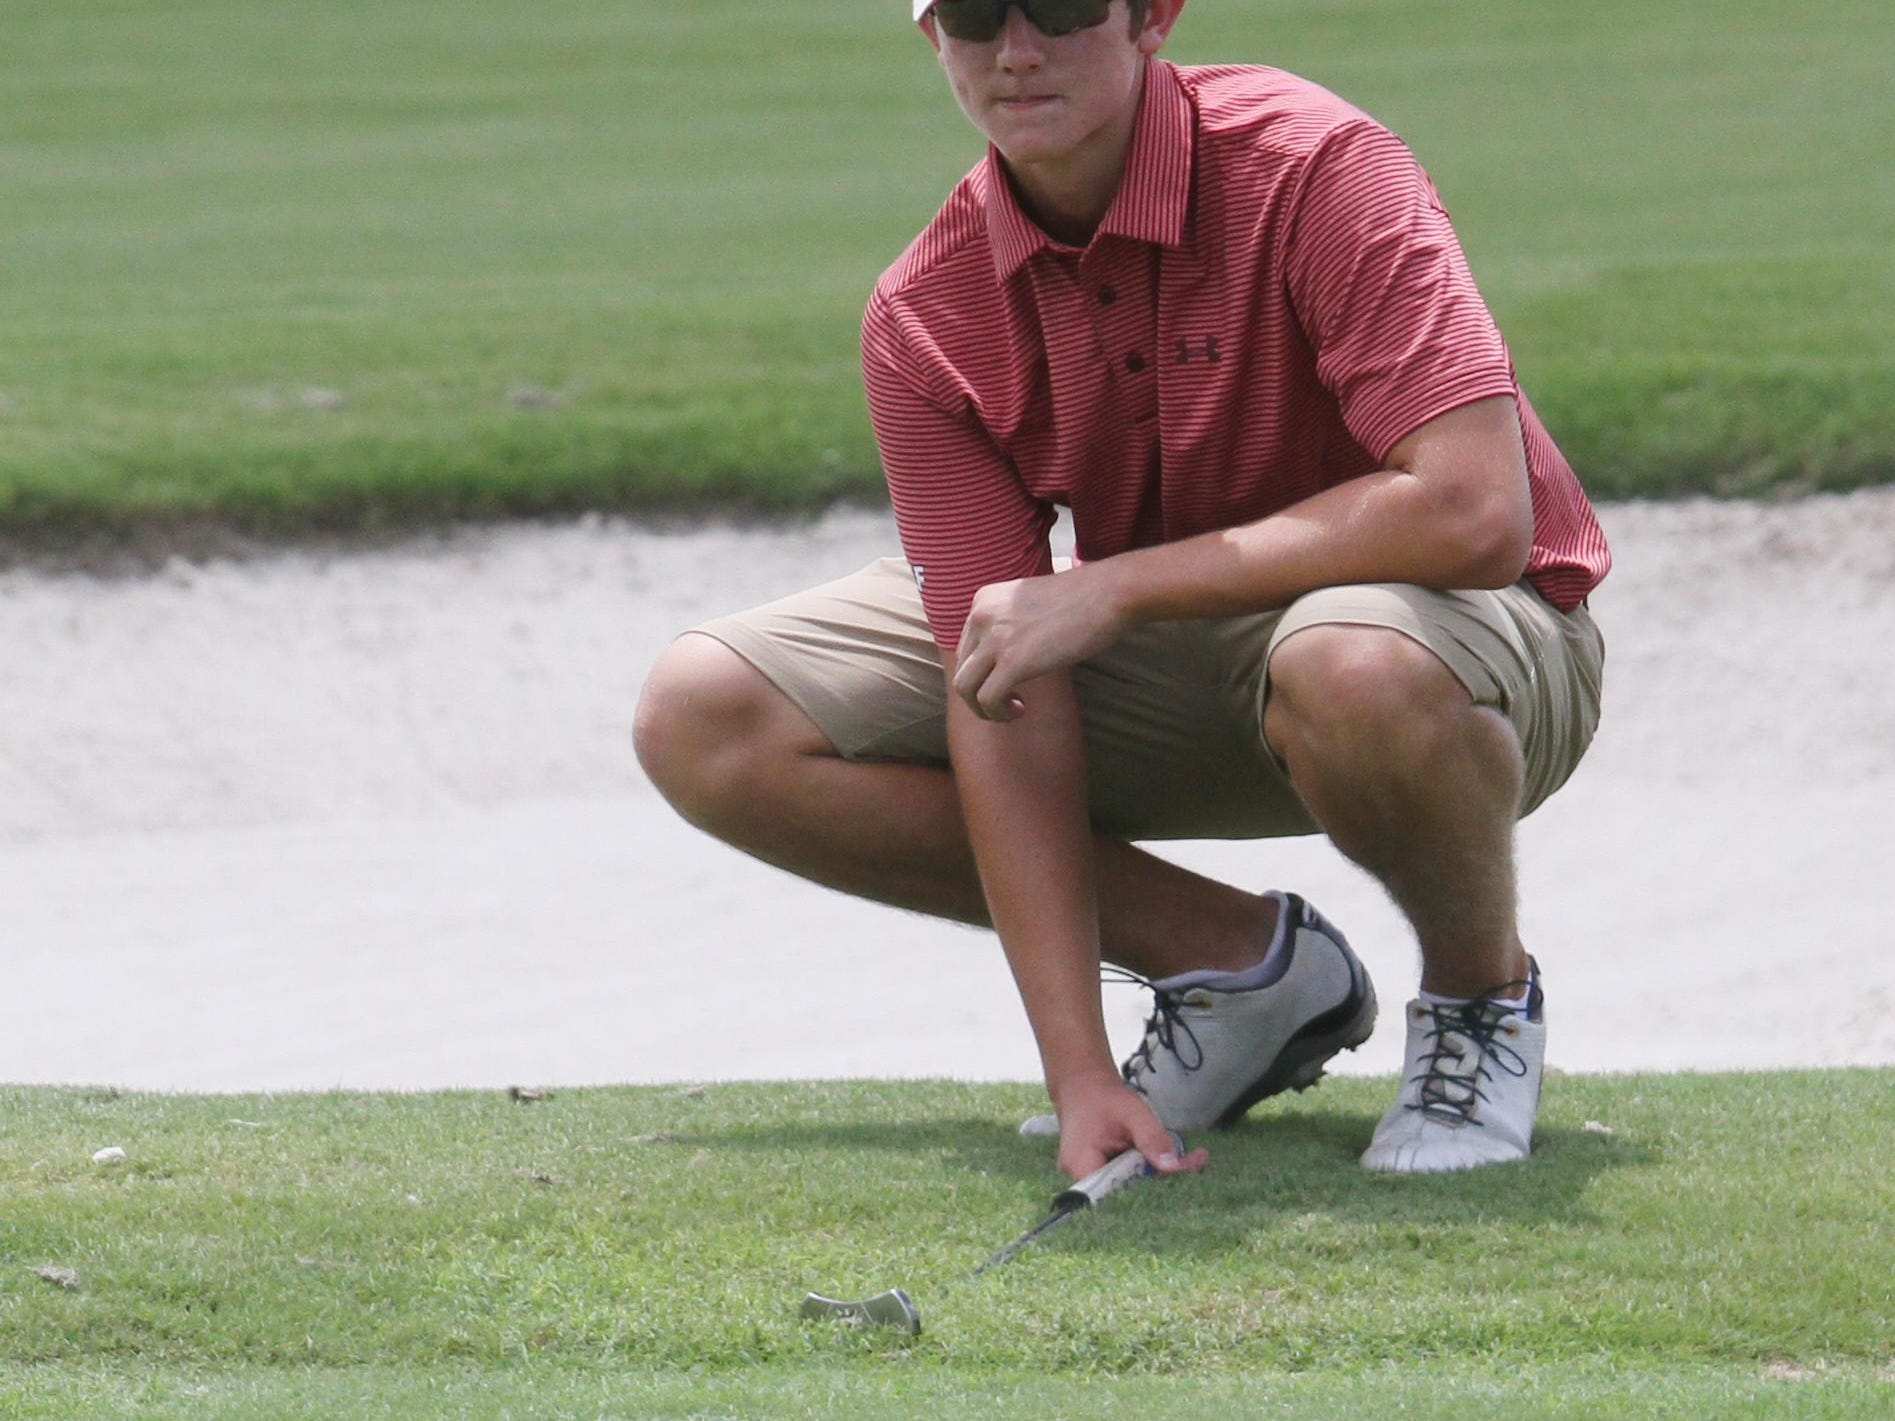 ECS golfer Shane Reynolds line up a putt on the 2nd hole while practicing at the Verandah Golf Club on Saturday.